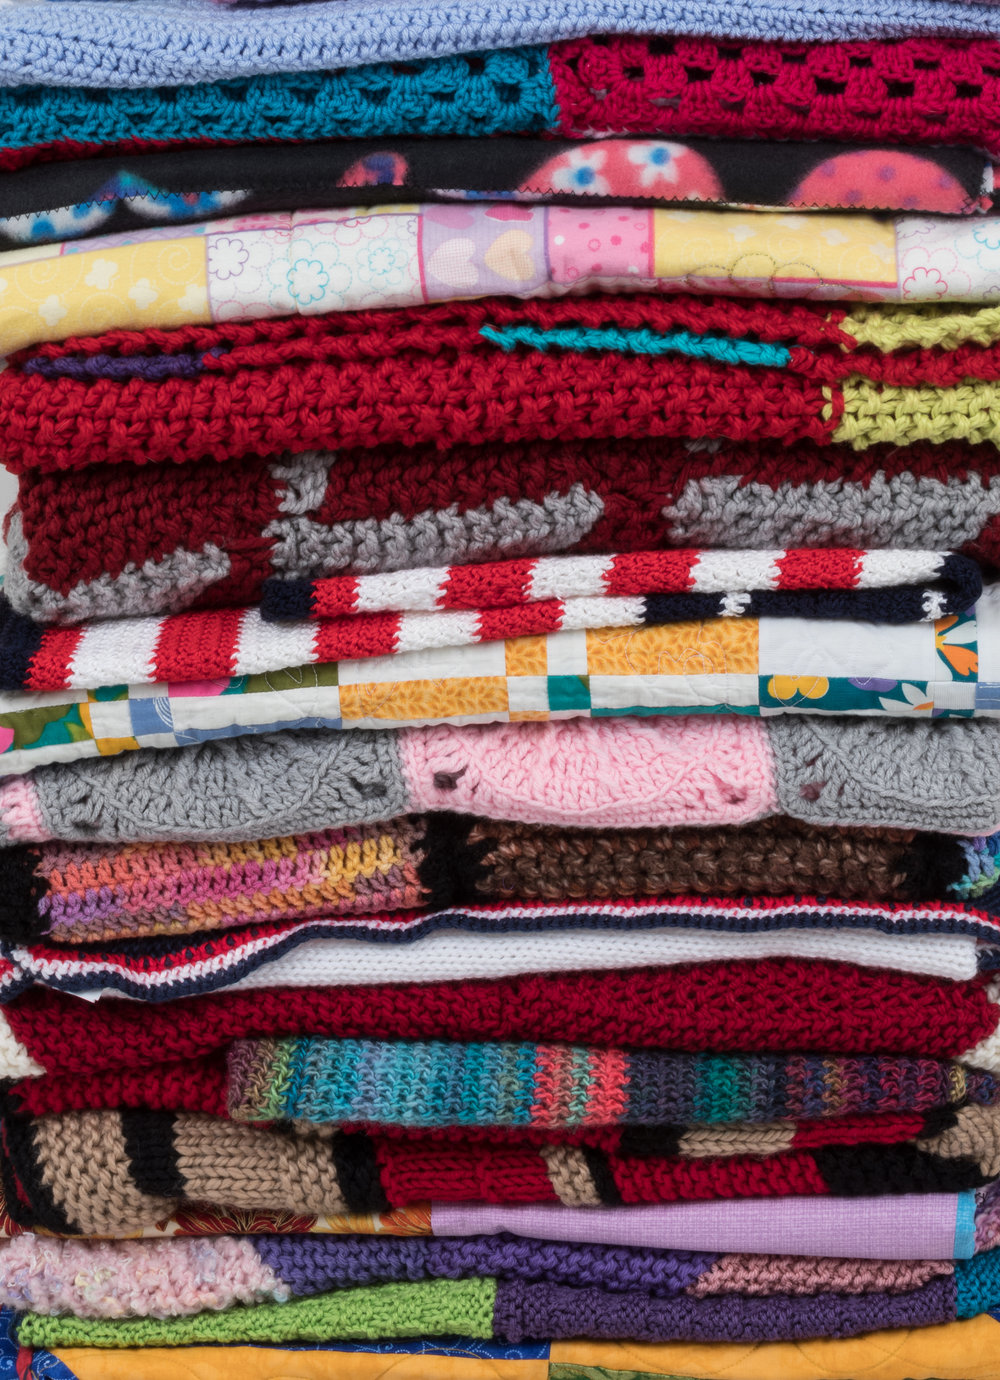 (IMAGE DESCRIPTION: A gigantic pile of blankets of various kinds: knit, crochet, quilted, and maybe woven. Different patterns represented. Different colors present.)